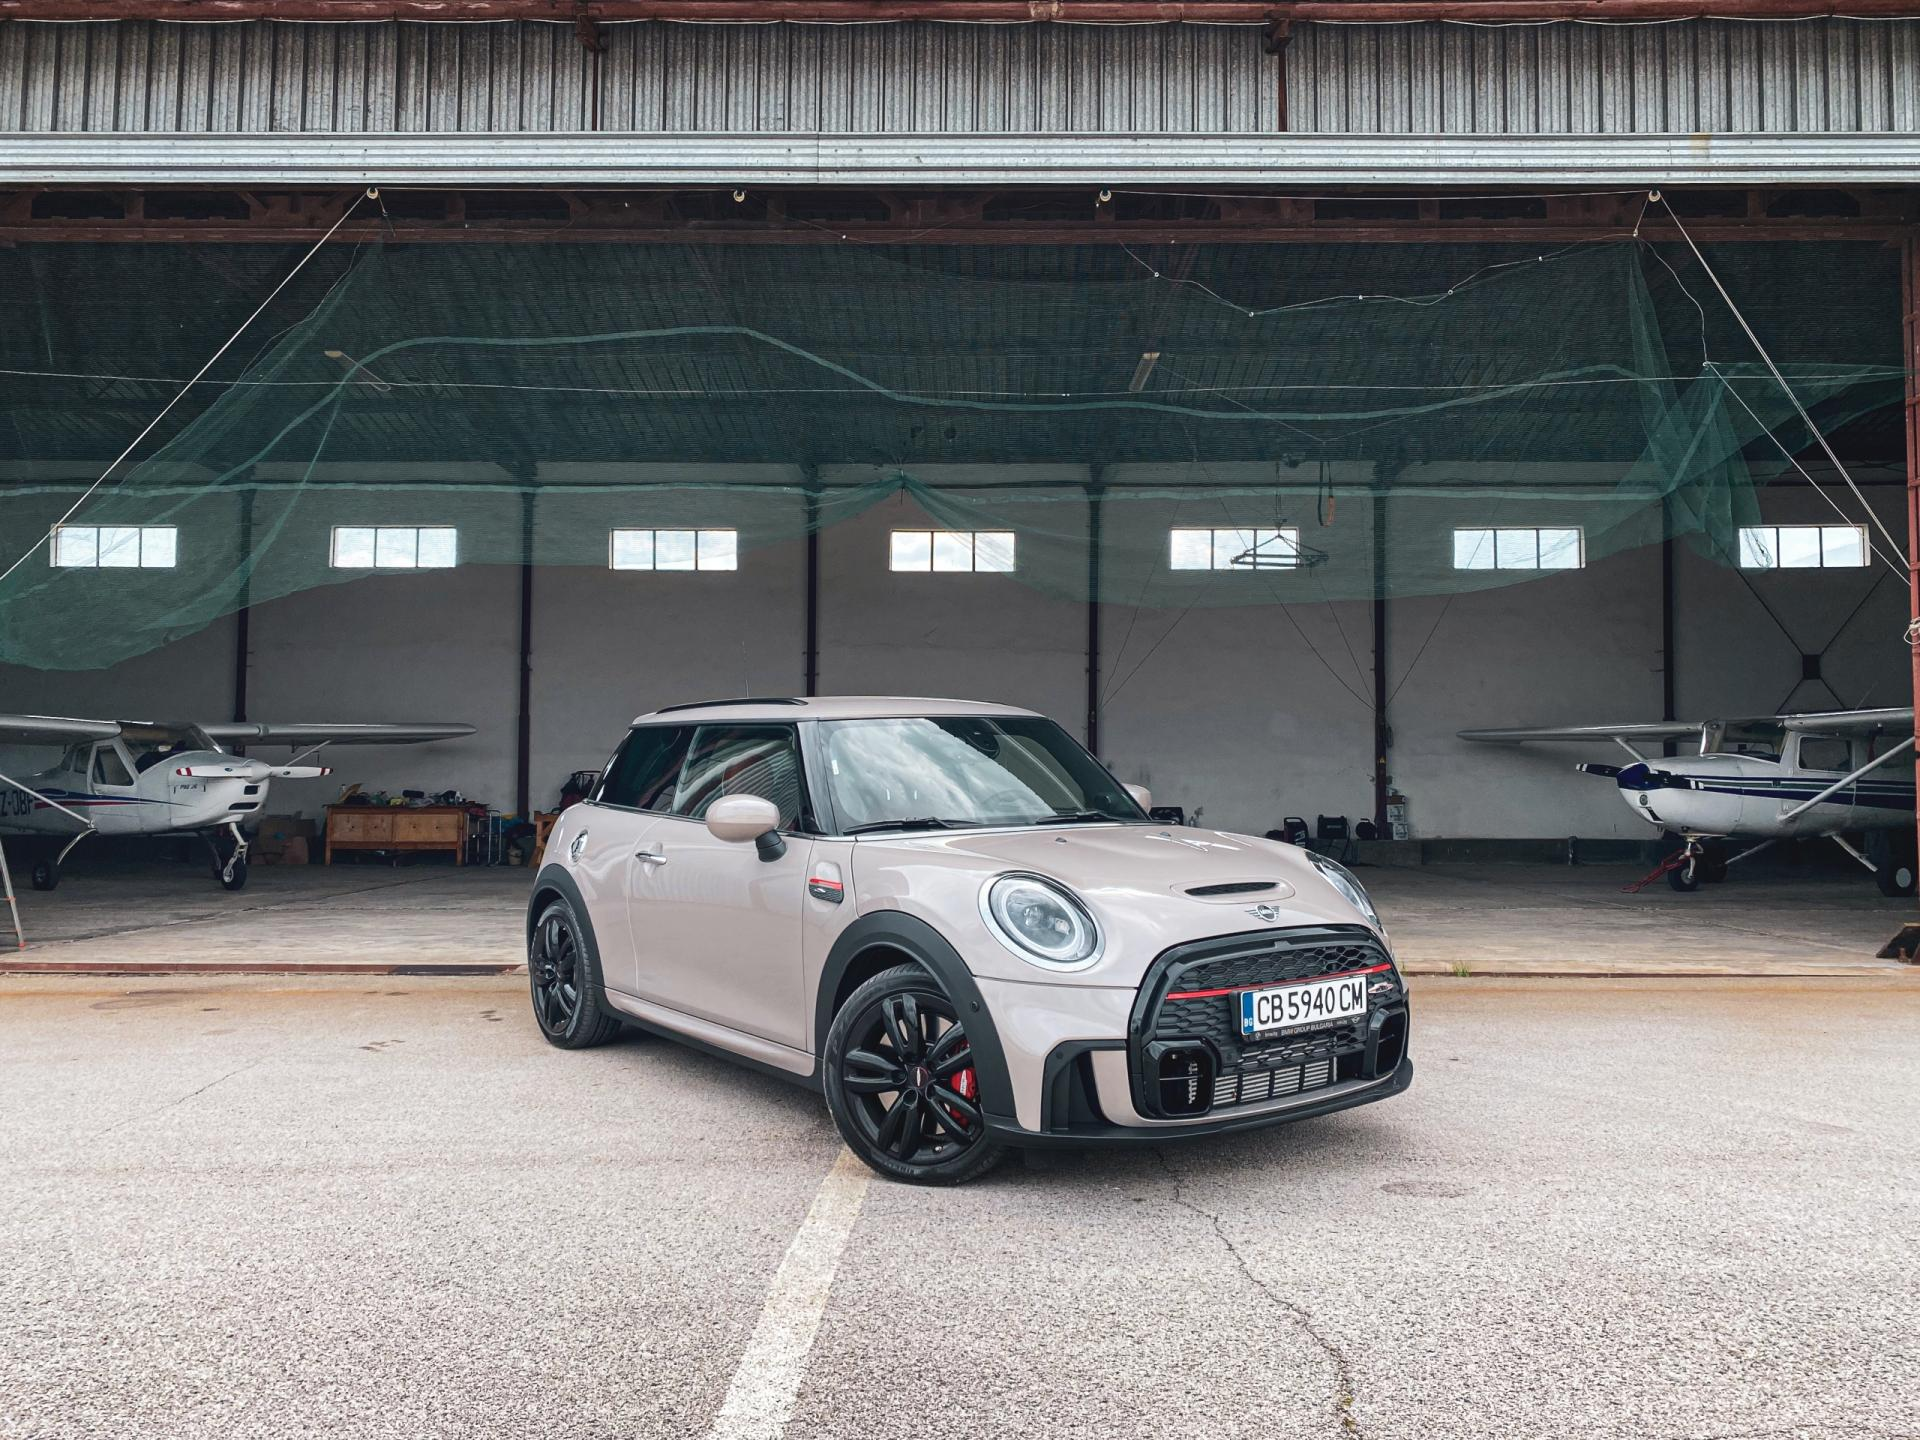 MINI JCW LCI infront a plane hanger, surrounded by two planes